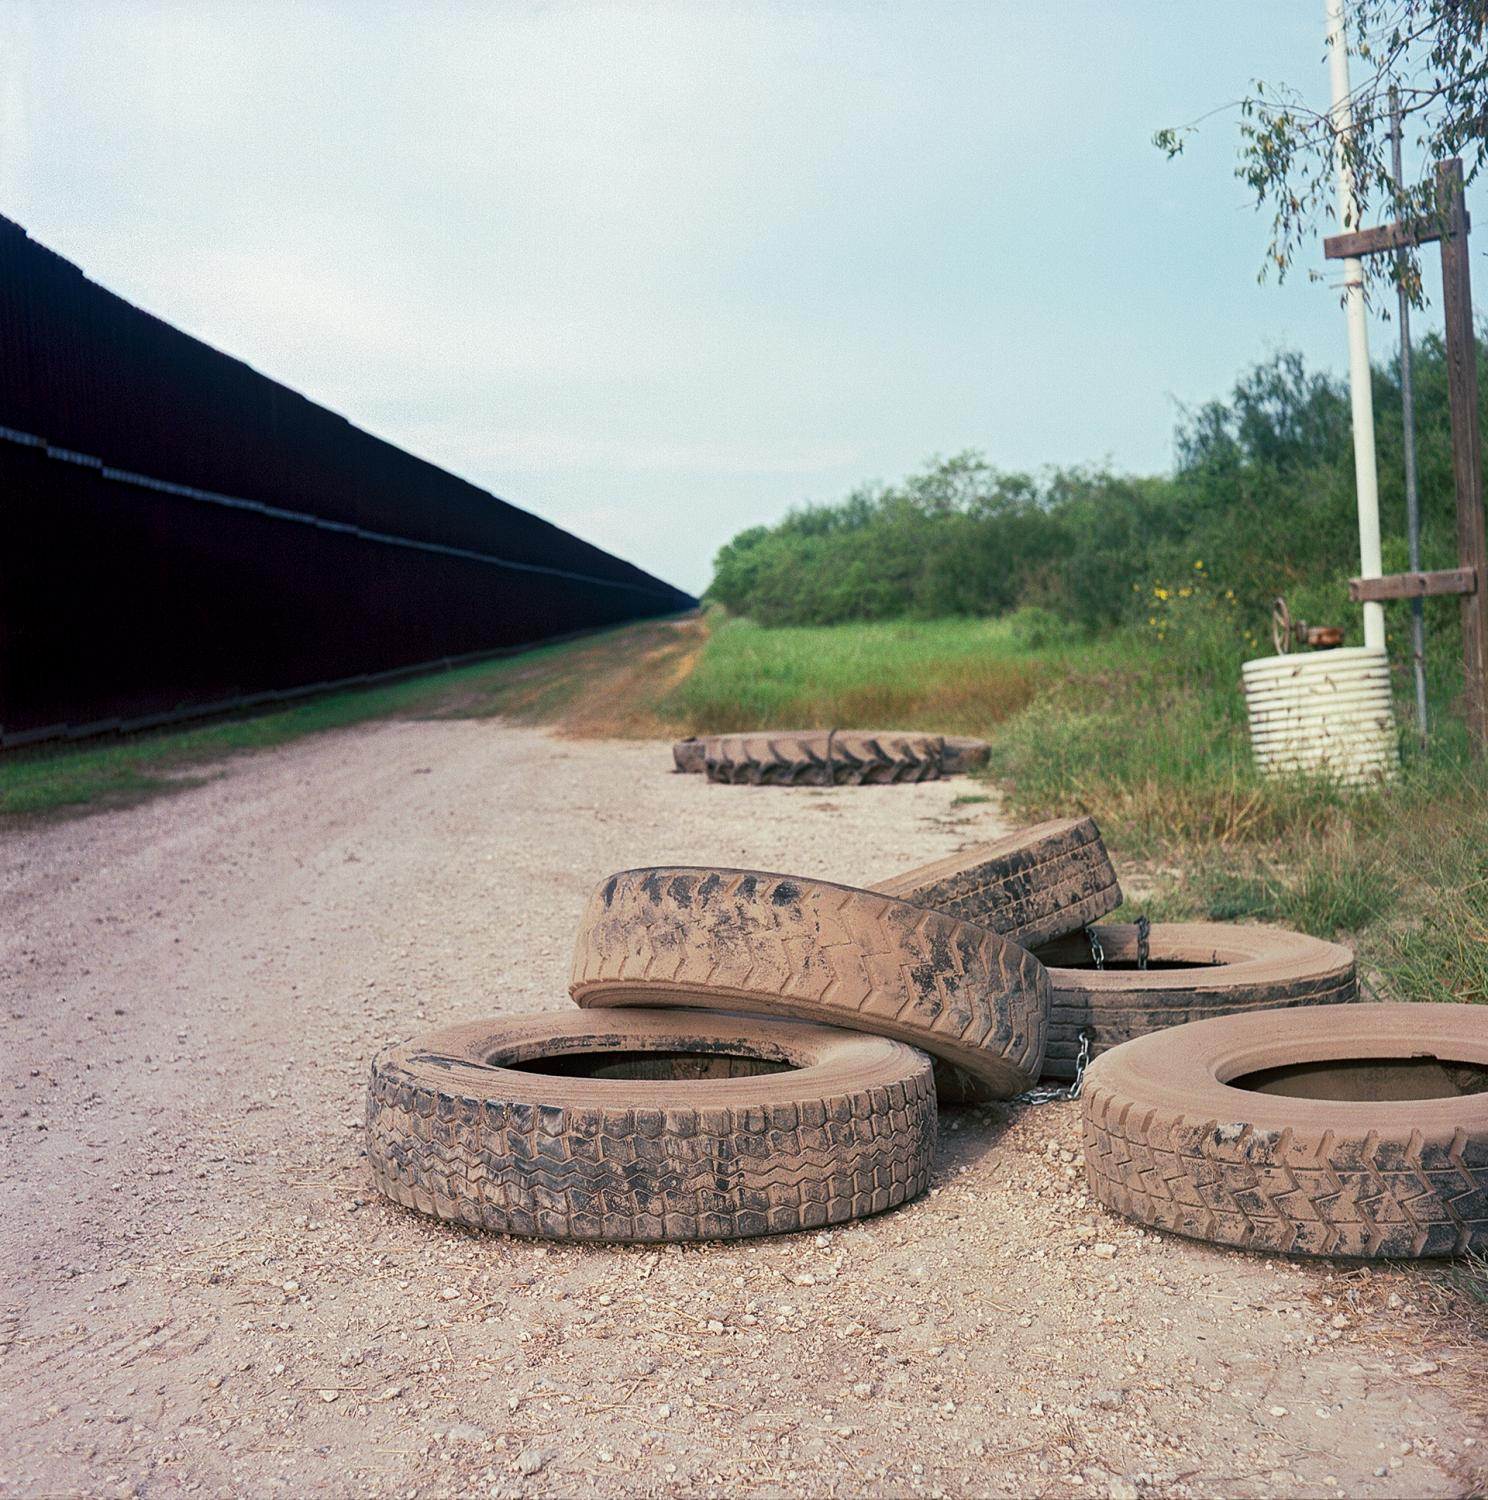 Brownsville, TX - OCTOBER 16, 2020: Old tires at the U.S.-Mexico border fence. Border agents hitch old tires to the backs of their patrol units and drag them across dirt roads paralleling the border in order to clear footprints to determine a timeline of crossings.